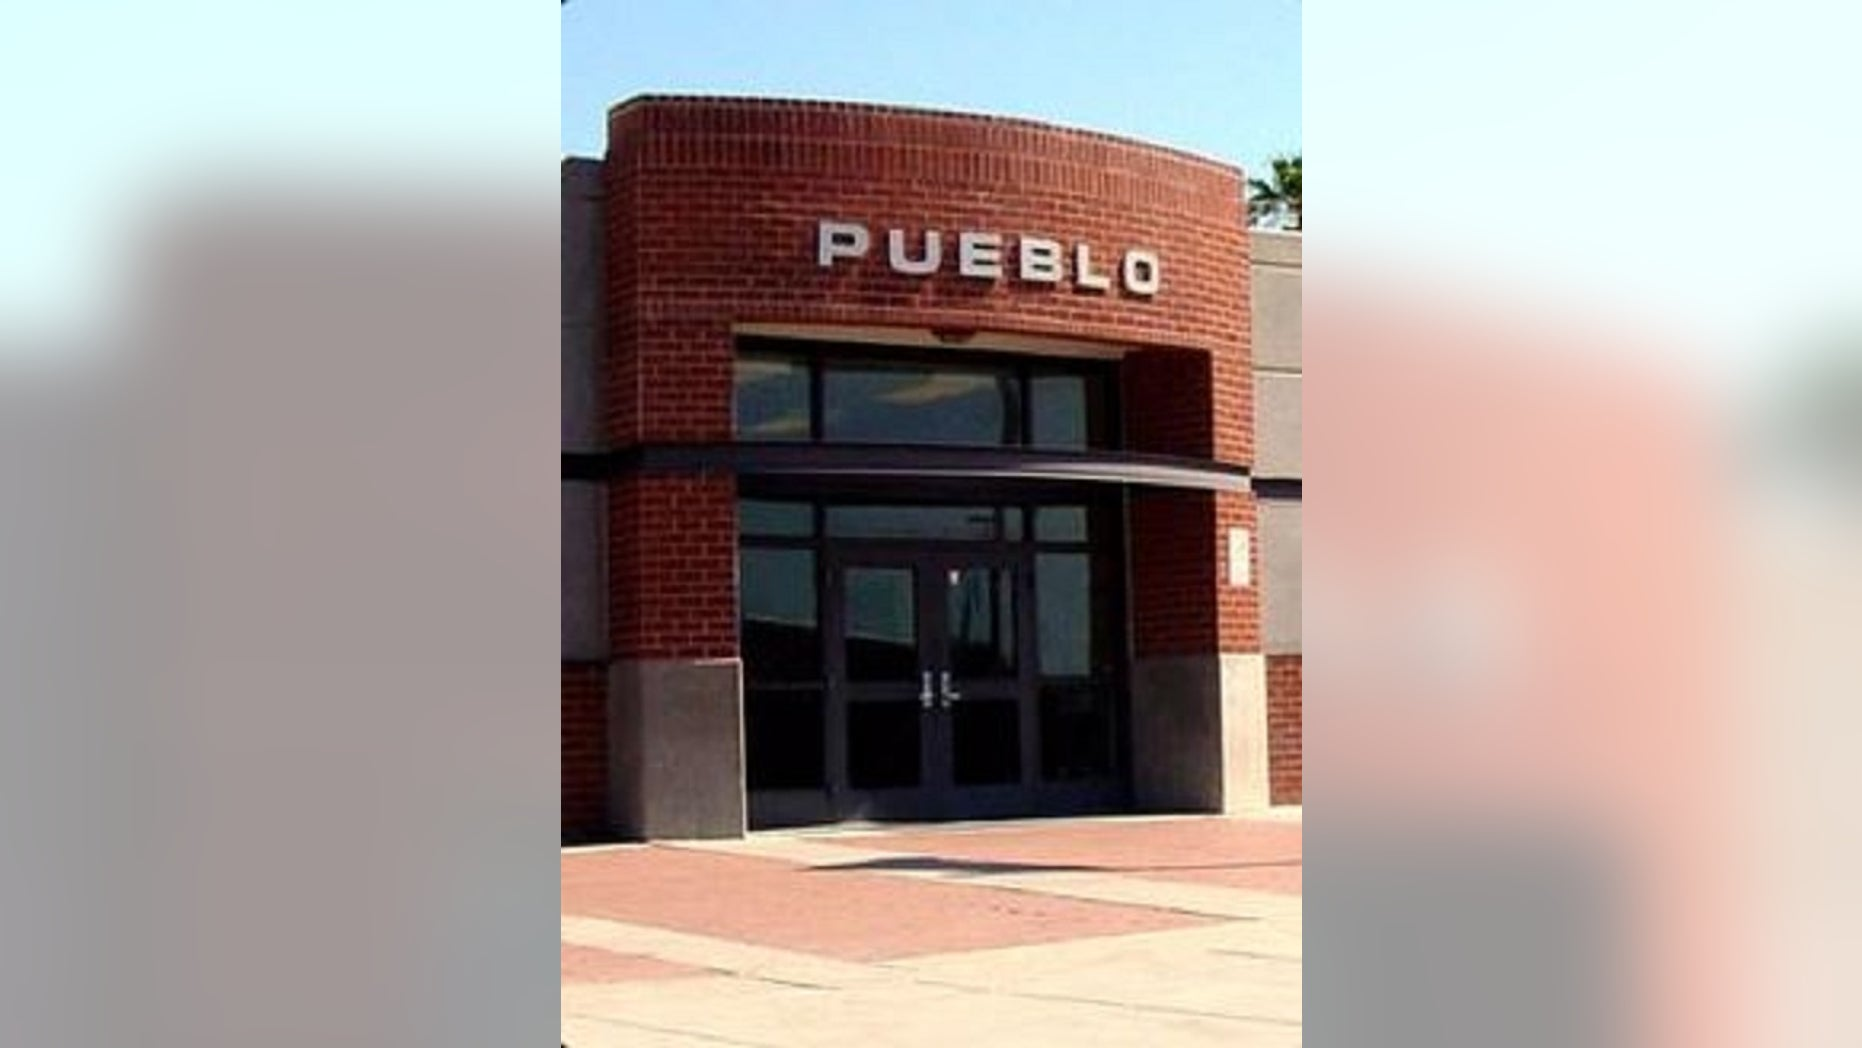 Pueblo High School